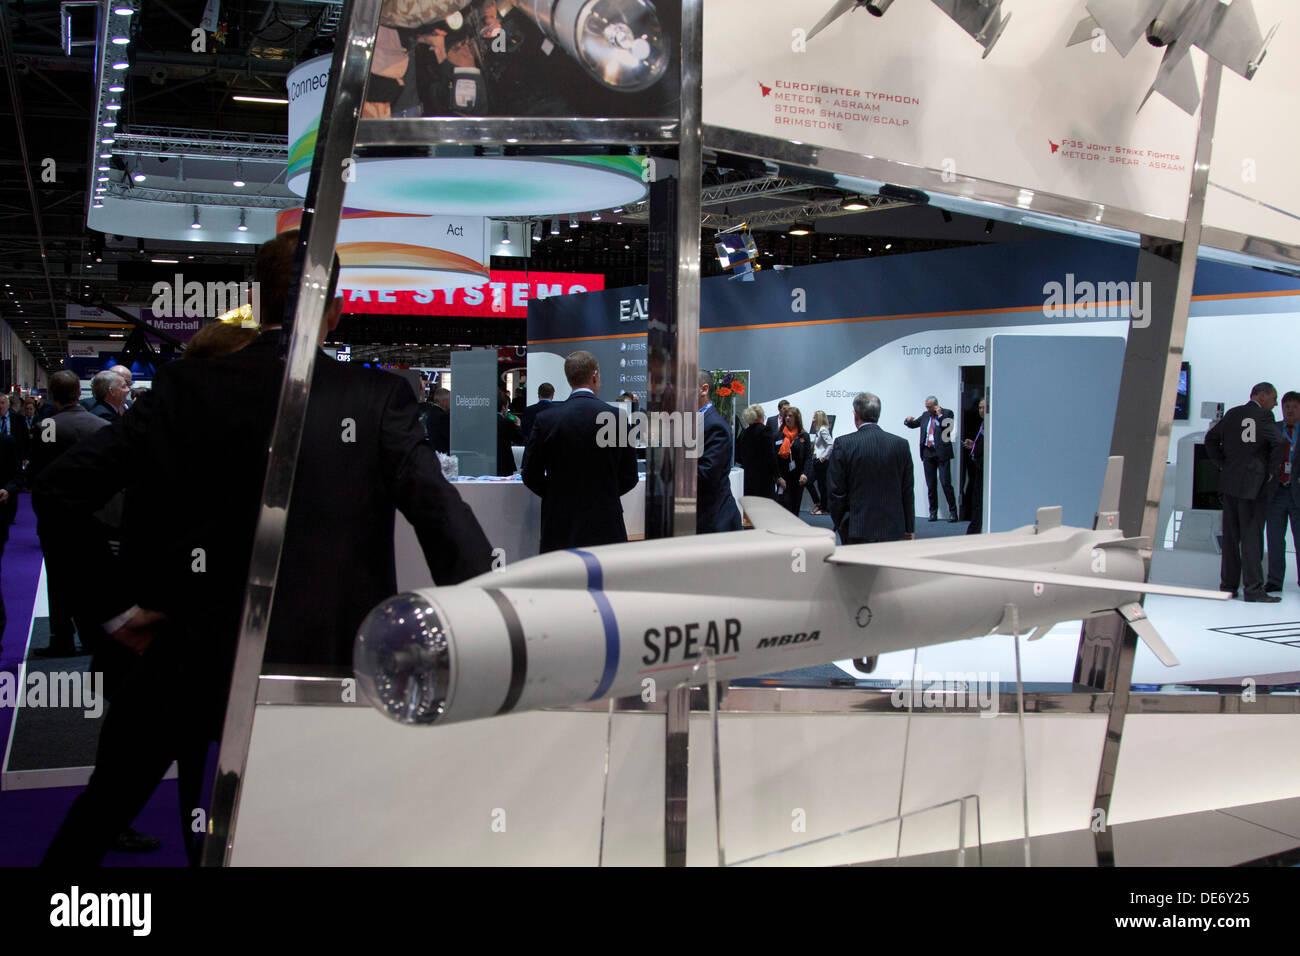 London, UK. 12th September 2013. A missile on display at the Defence and Security Equipment (DSEI) arms fair at Stock Photo